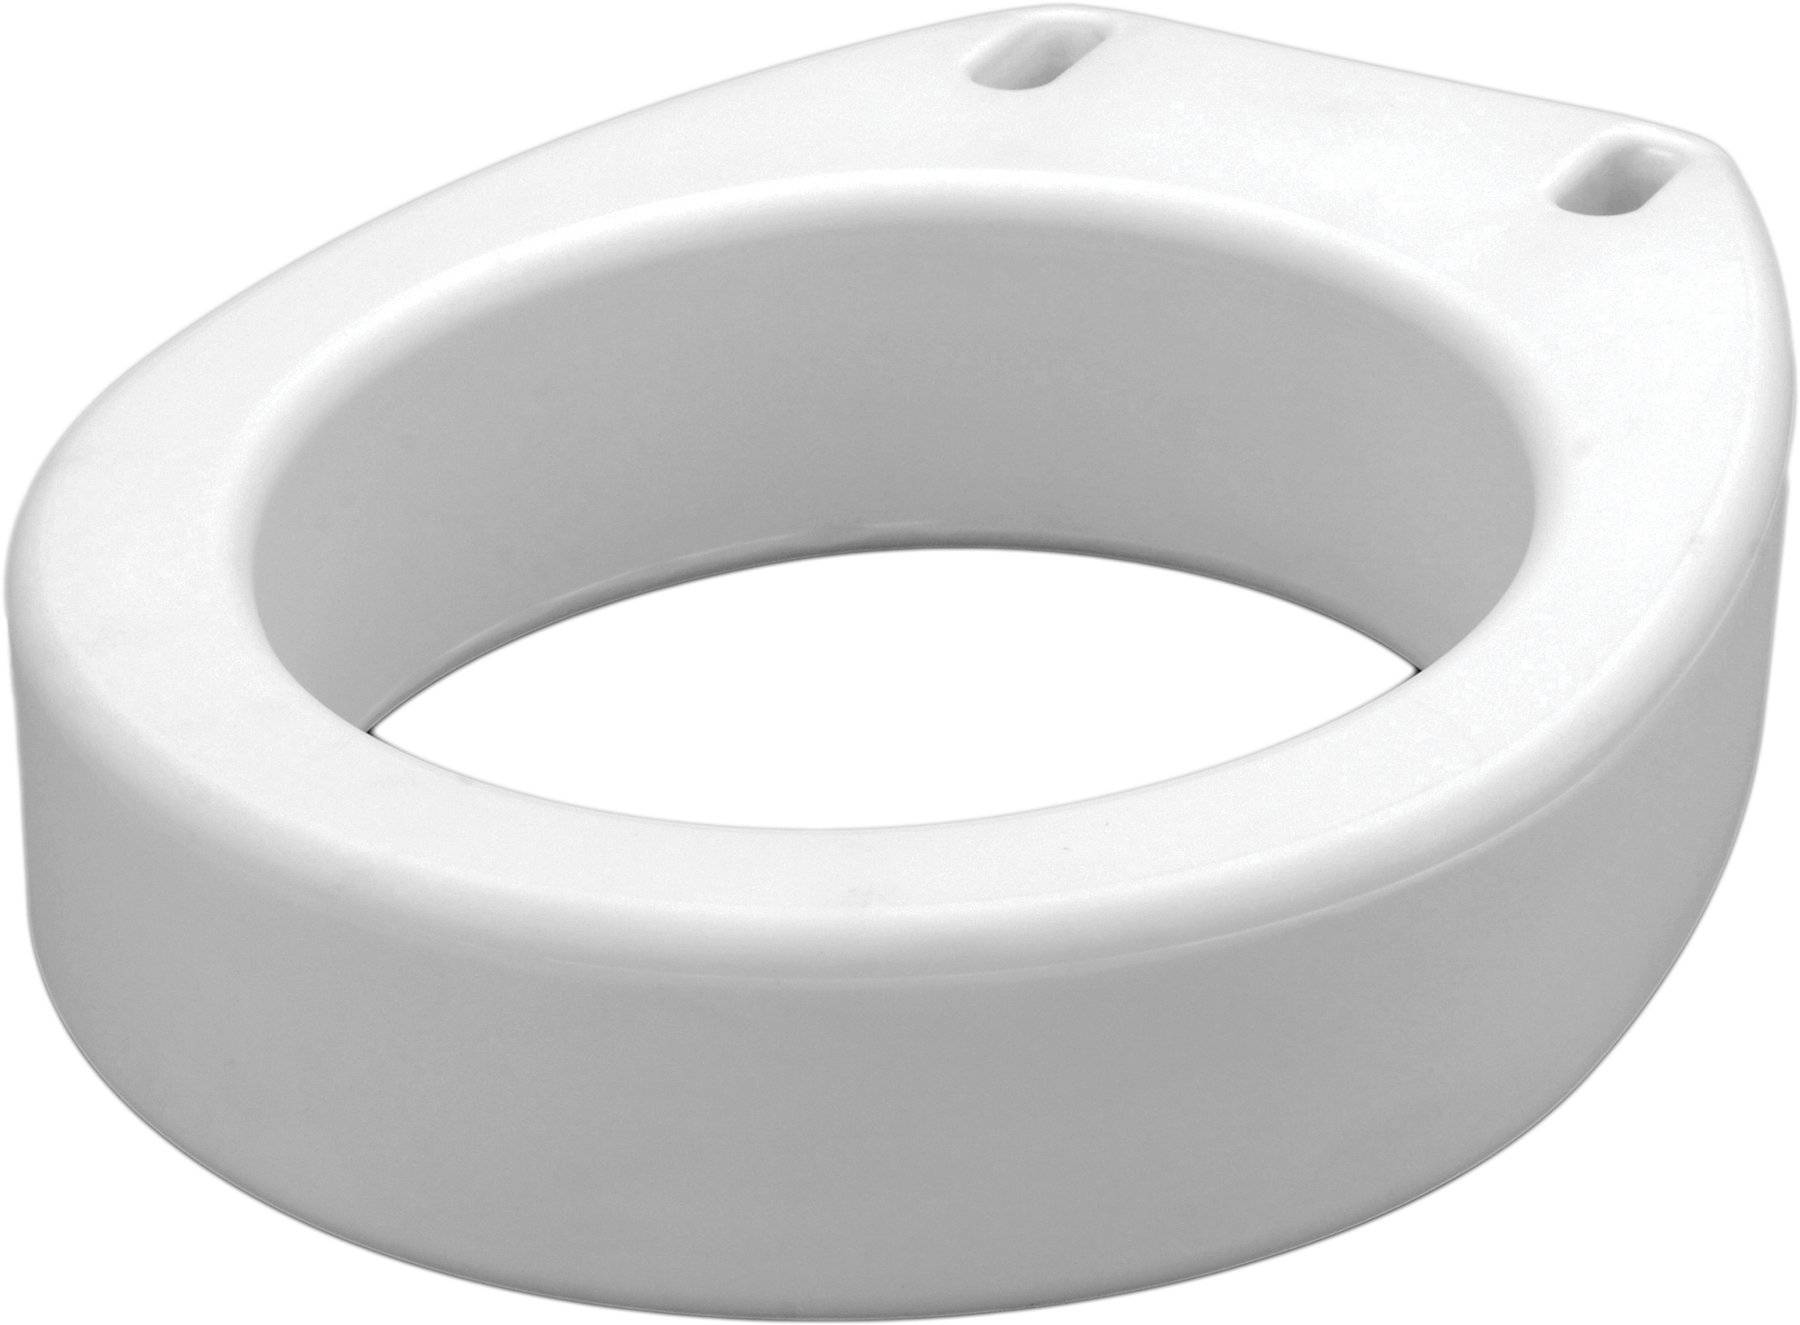 Amazon Com Nova Toilet Seat Elevator Elongated Health